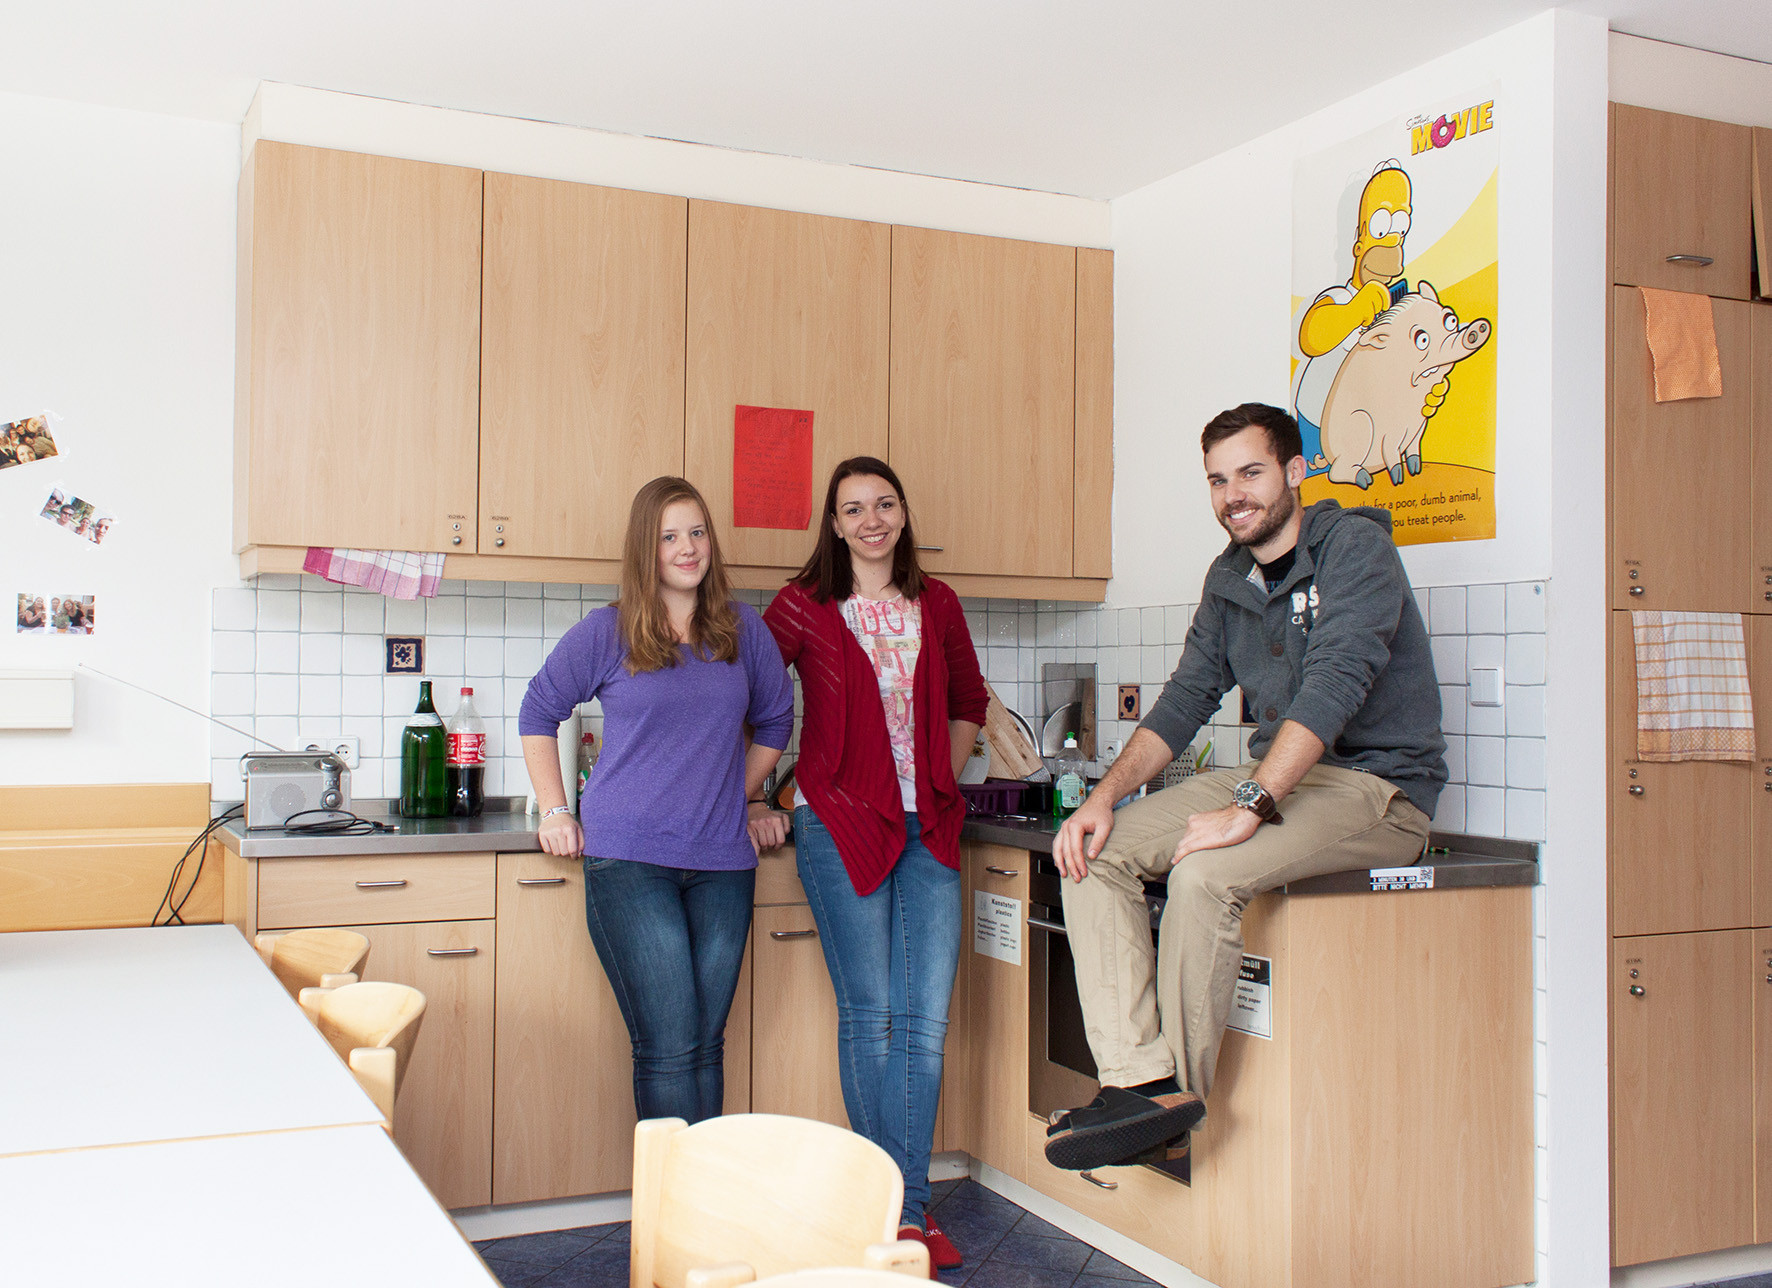 3 Students in the kitchen of an ÖJAB Student dorm